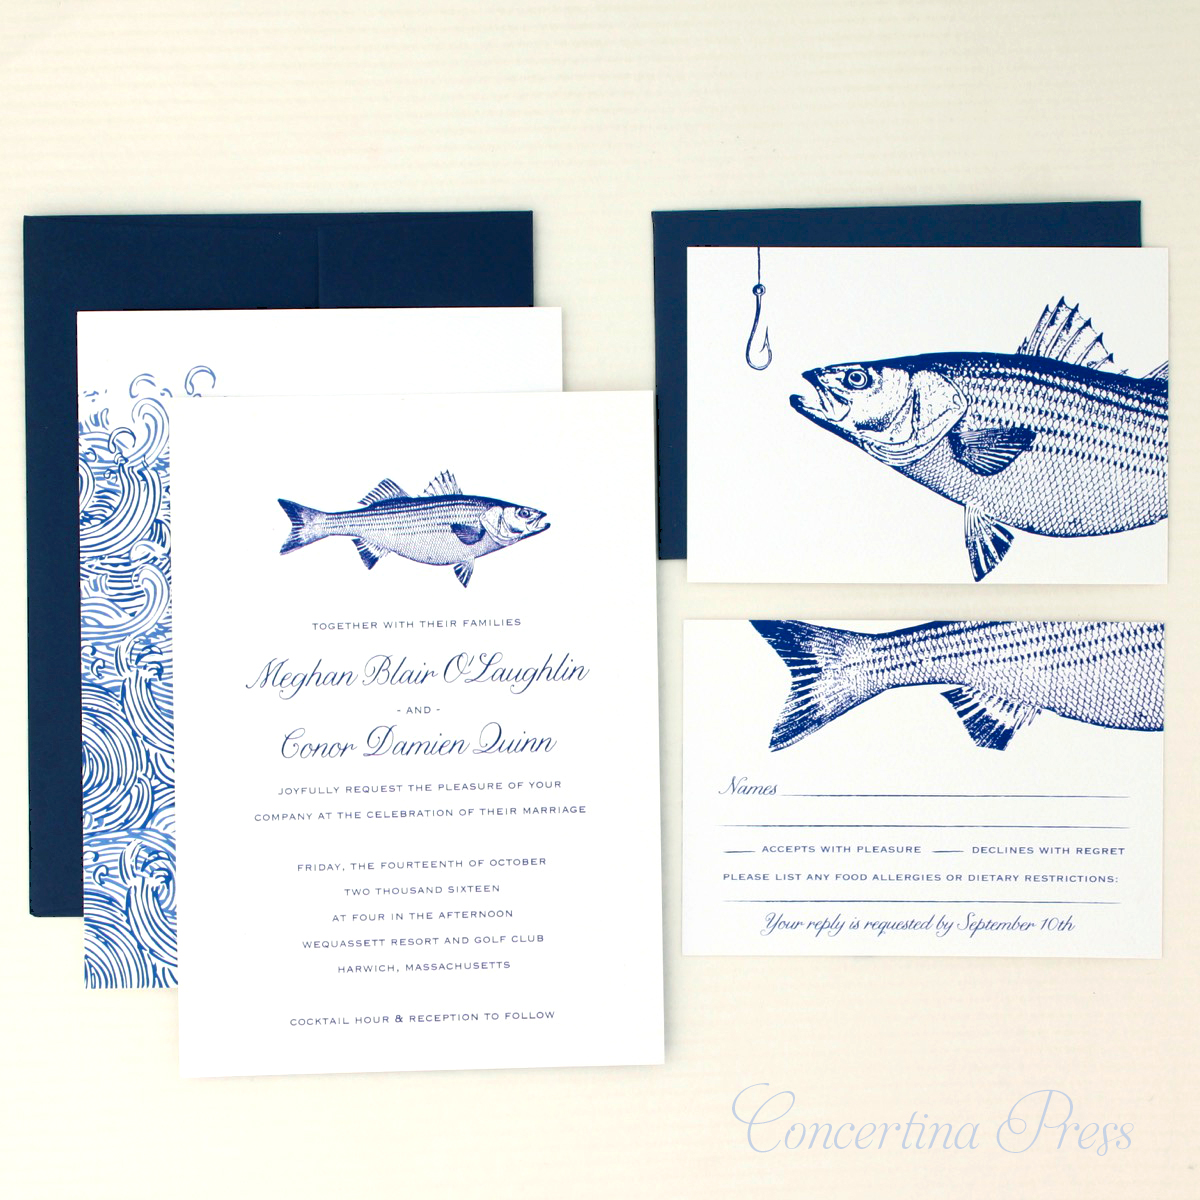 Striped Bass Wedding Invitation set with RSVP from Concertina Press